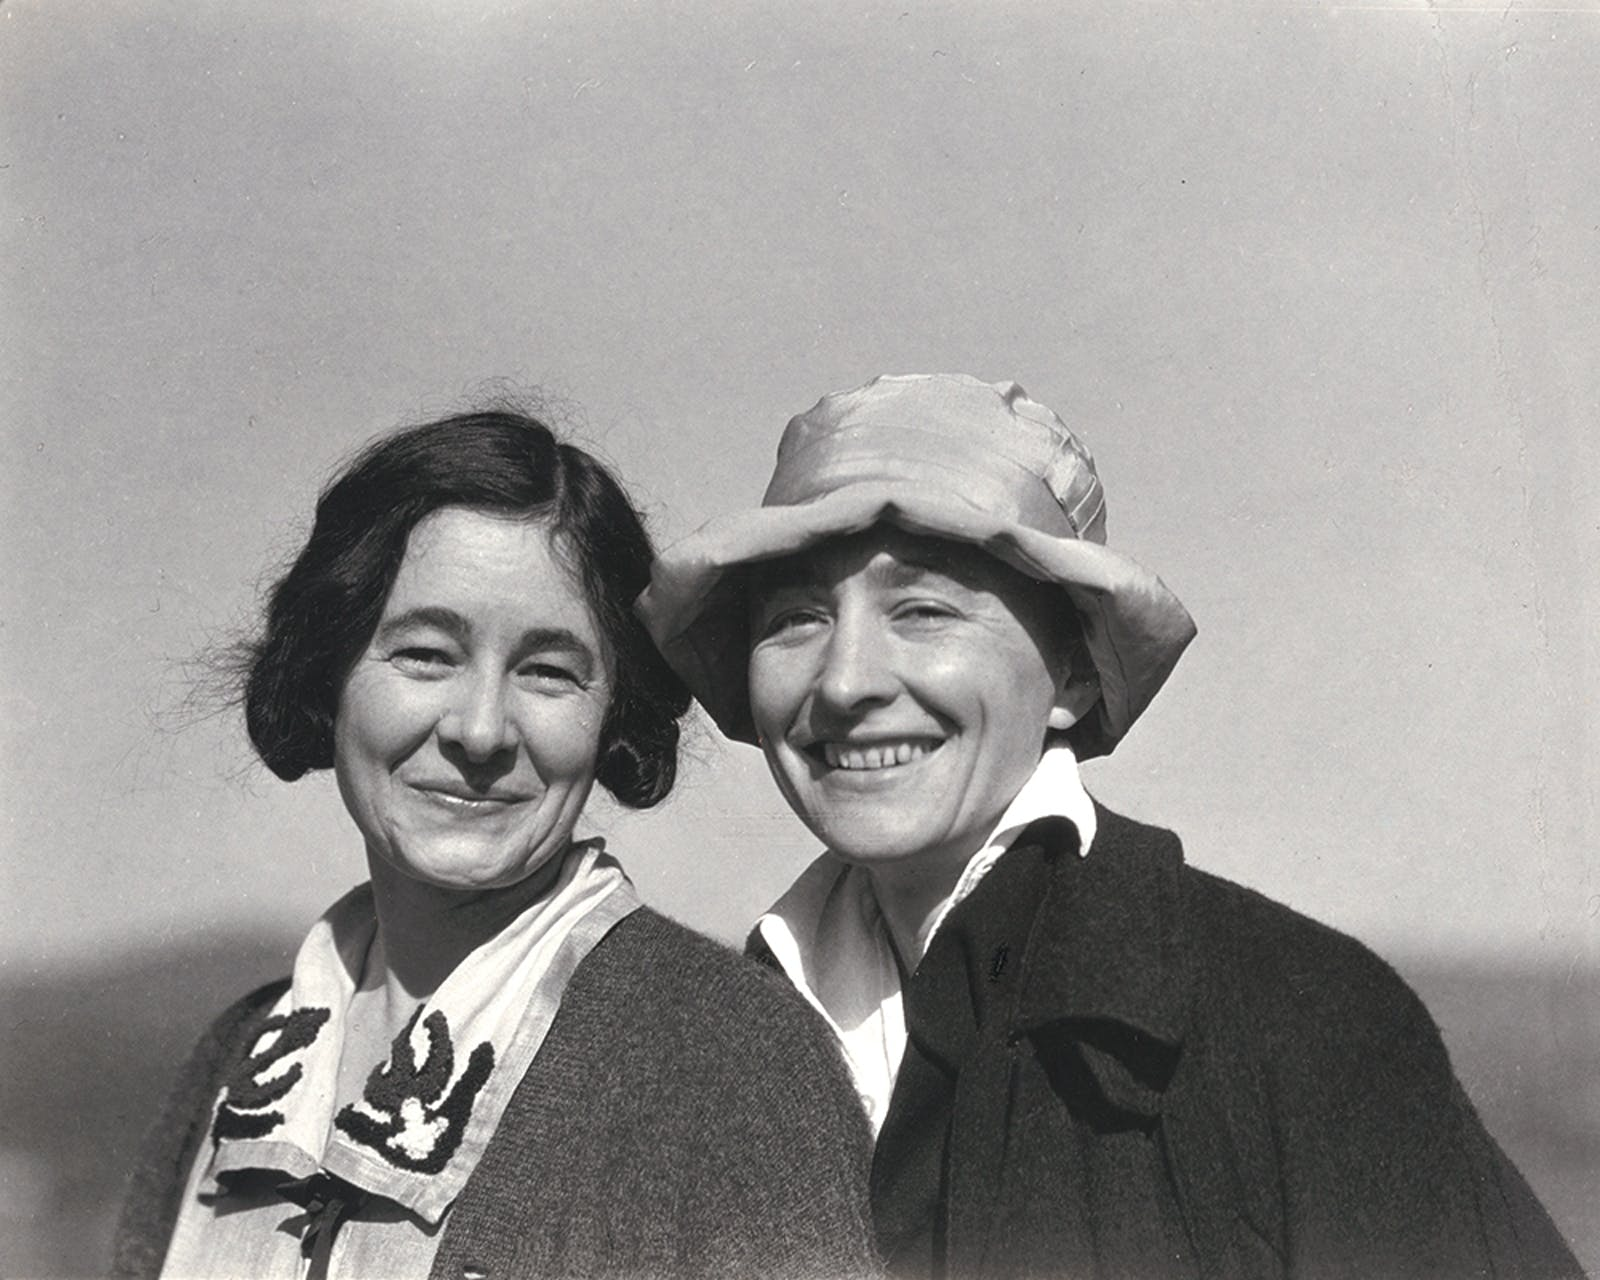 Ida and Georgia O'Keeffe smiling together